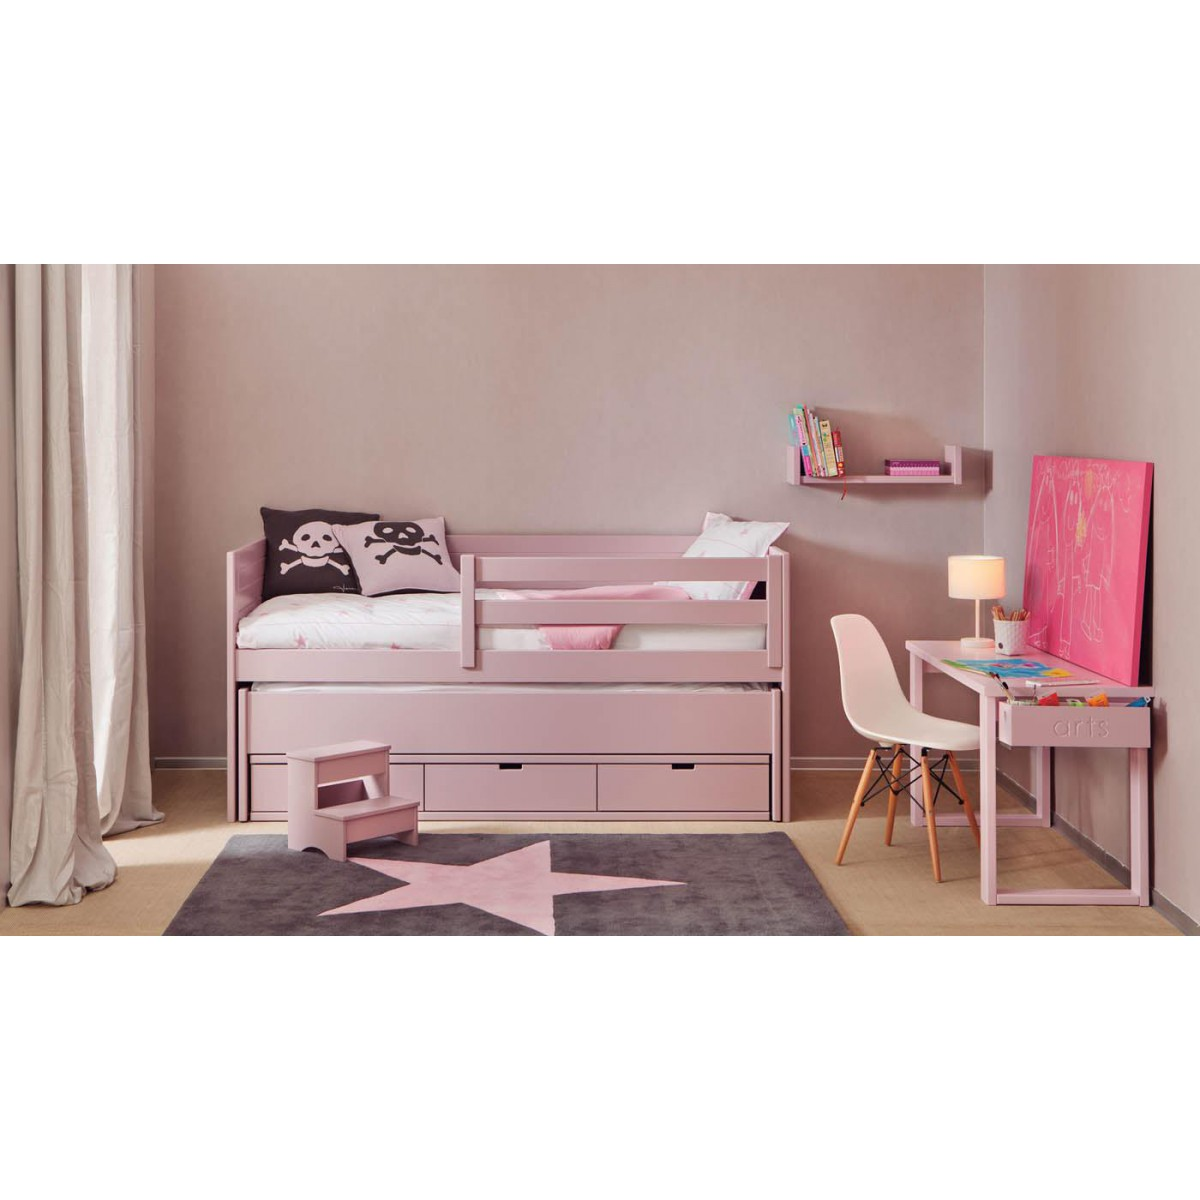 lit enfant haut de gamme maison design. Black Bedroom Furniture Sets. Home Design Ideas